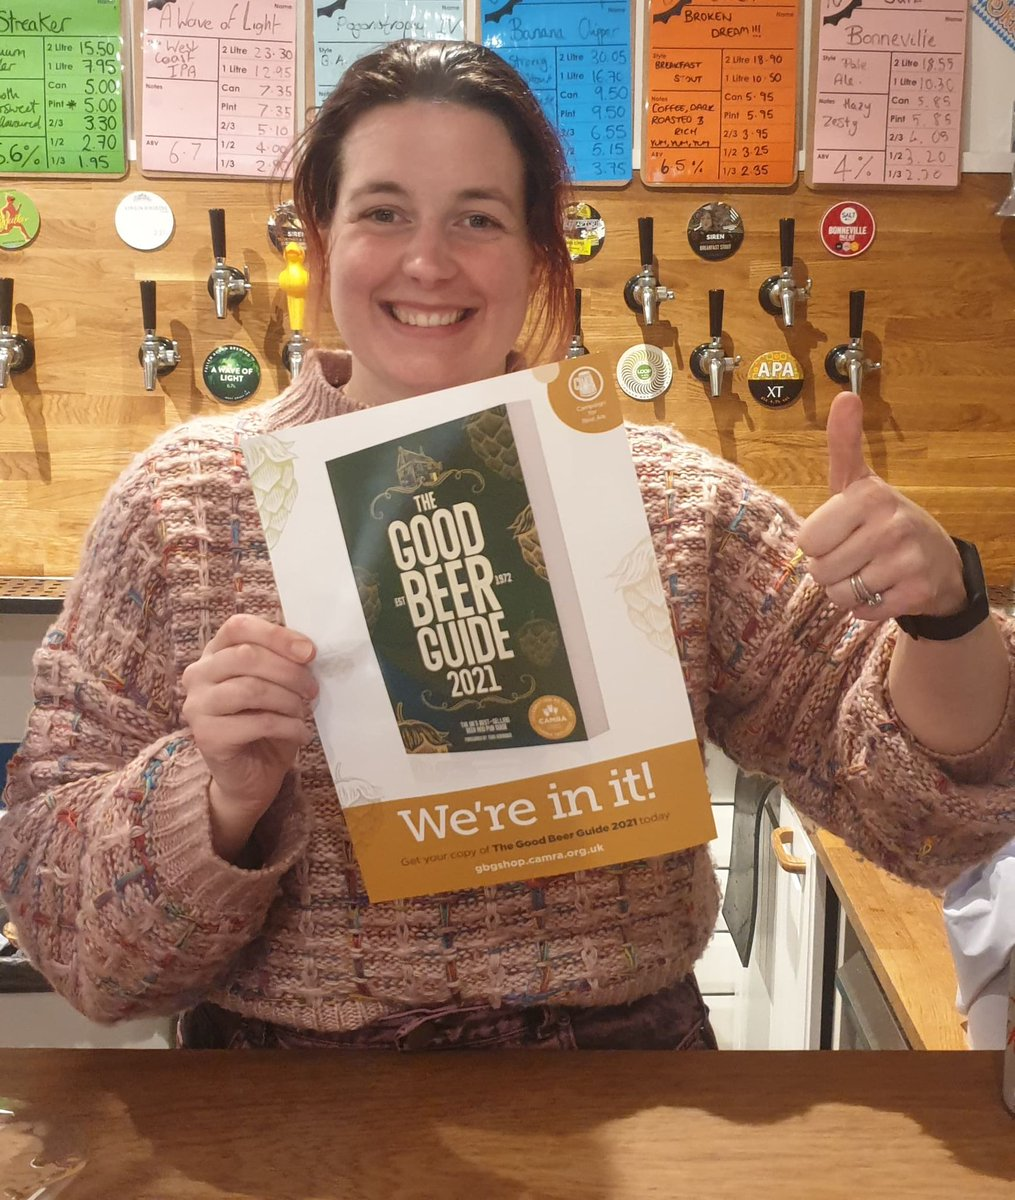 WANT GOOD BEER? ALLOW US TO GUIDE YOU...  We're very proud to announce that we're a part of the 2021 CAMRA Good Beer Guide.  Thank you to everyone who voted for us. Next year: Pub of the year ;-)   #gbg2021 #camra #goodbeerguide #cask #ale #realale #cheers #beer #craftbeer https://t.co/DXiDYYCXjJ